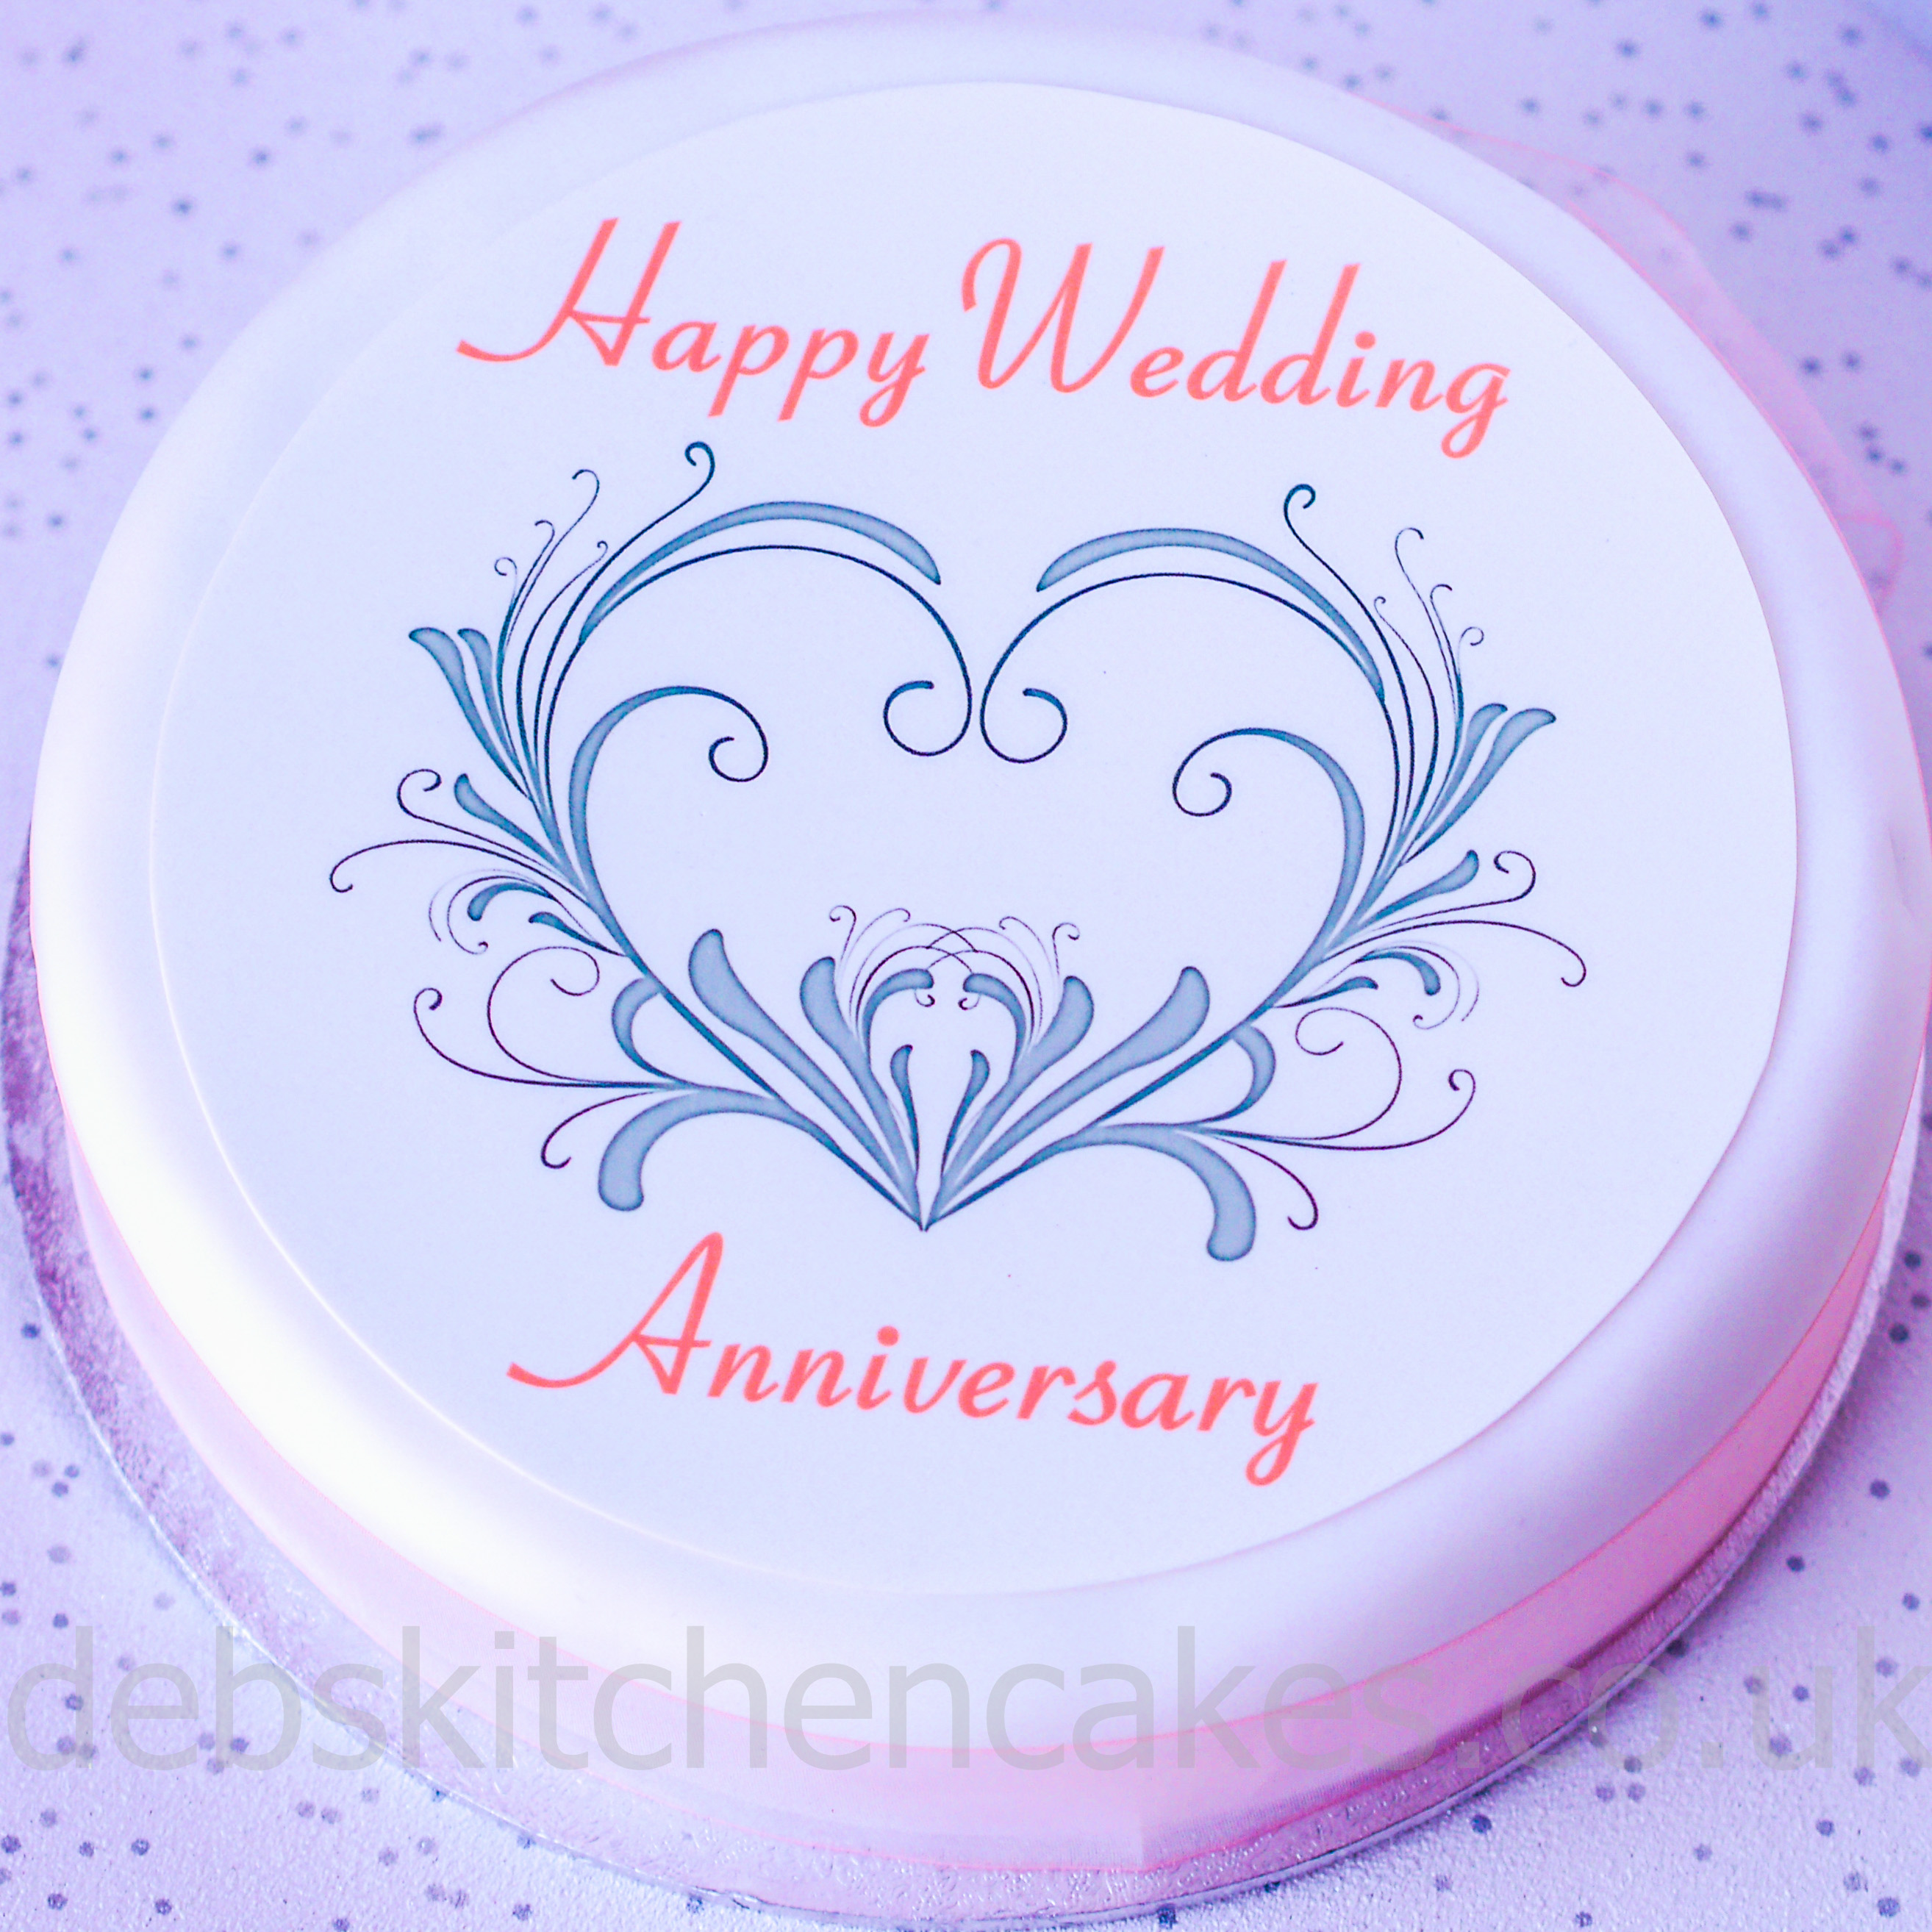 Cake Toppers Anniversaries Anniversaries Any